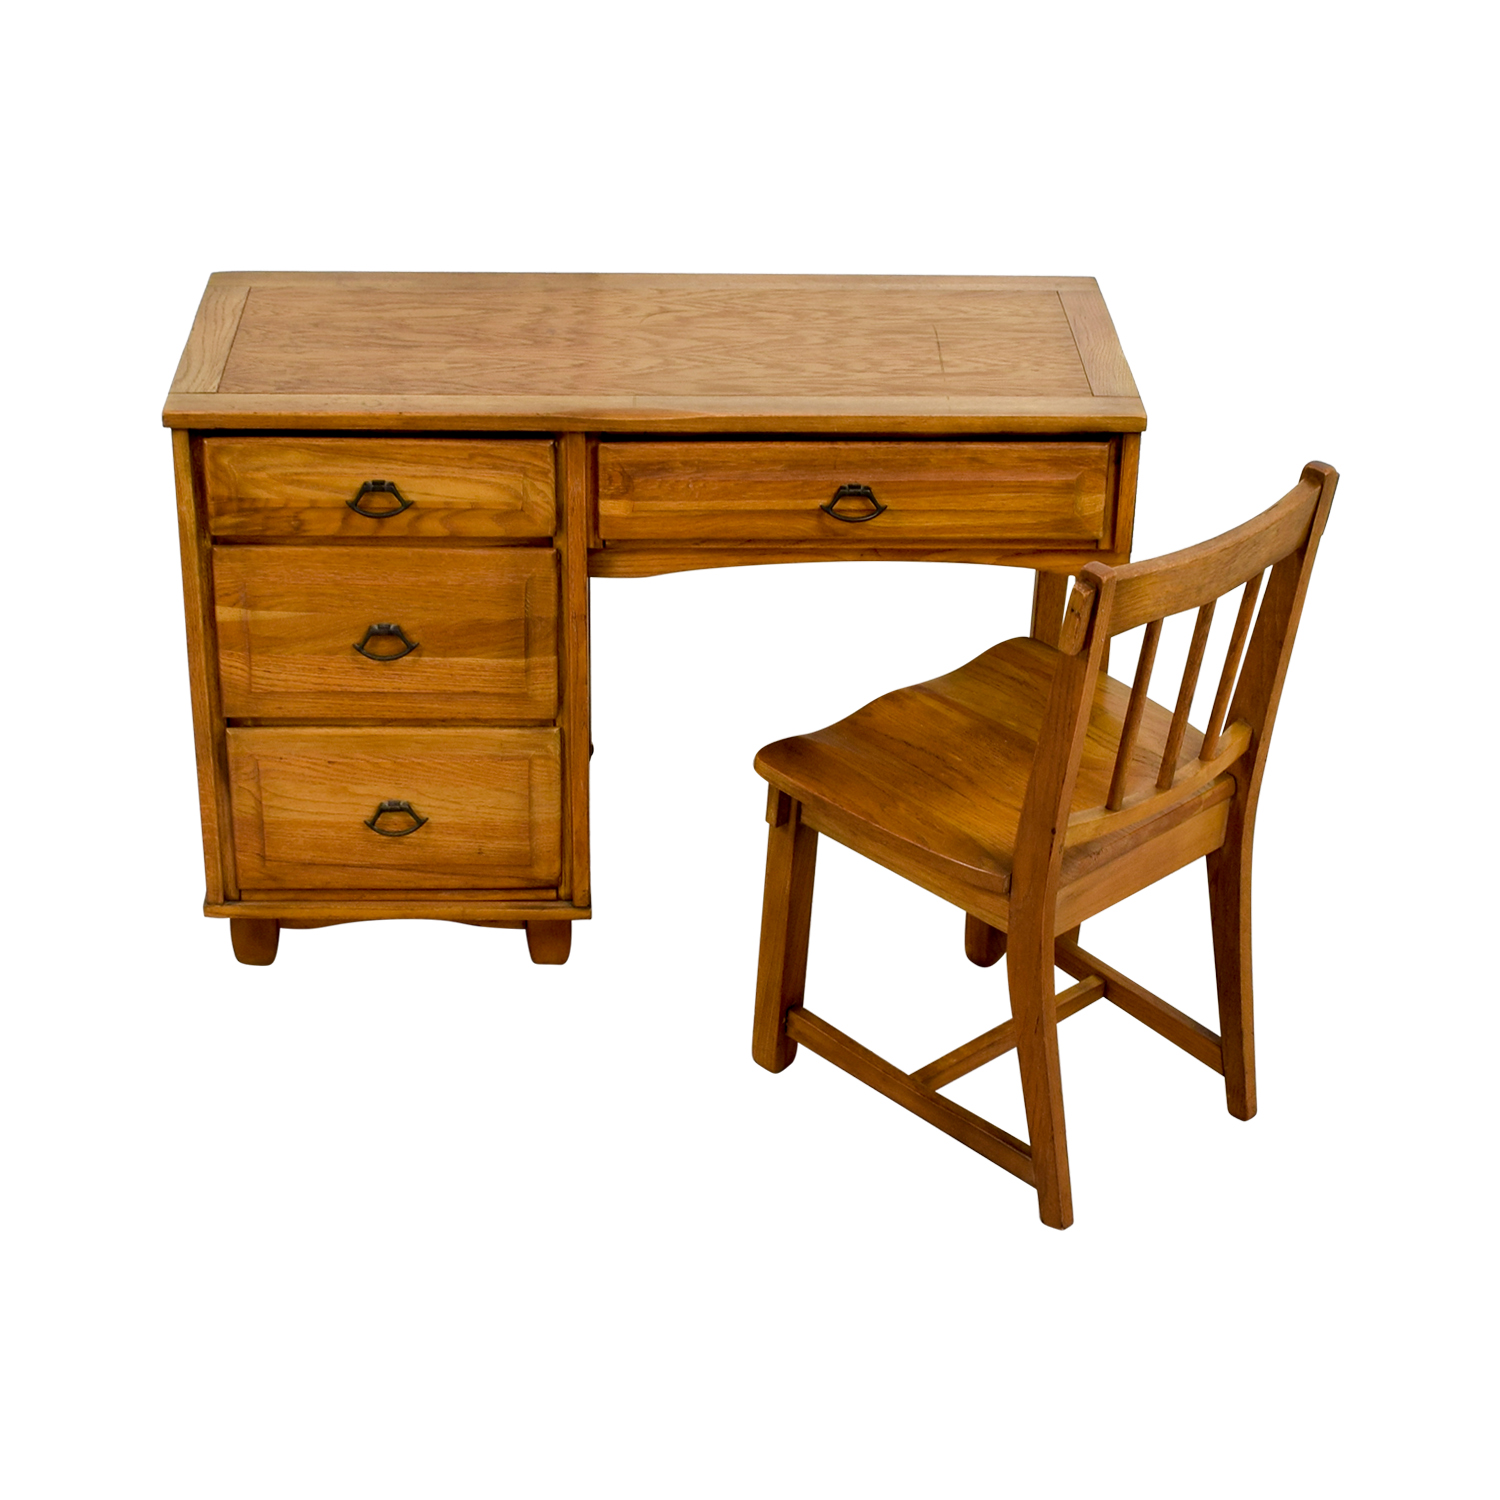 Awesome 86 Off Vintage Oak Desk With Chair Tables Gmtry Best Dining Table And Chair Ideas Images Gmtryco